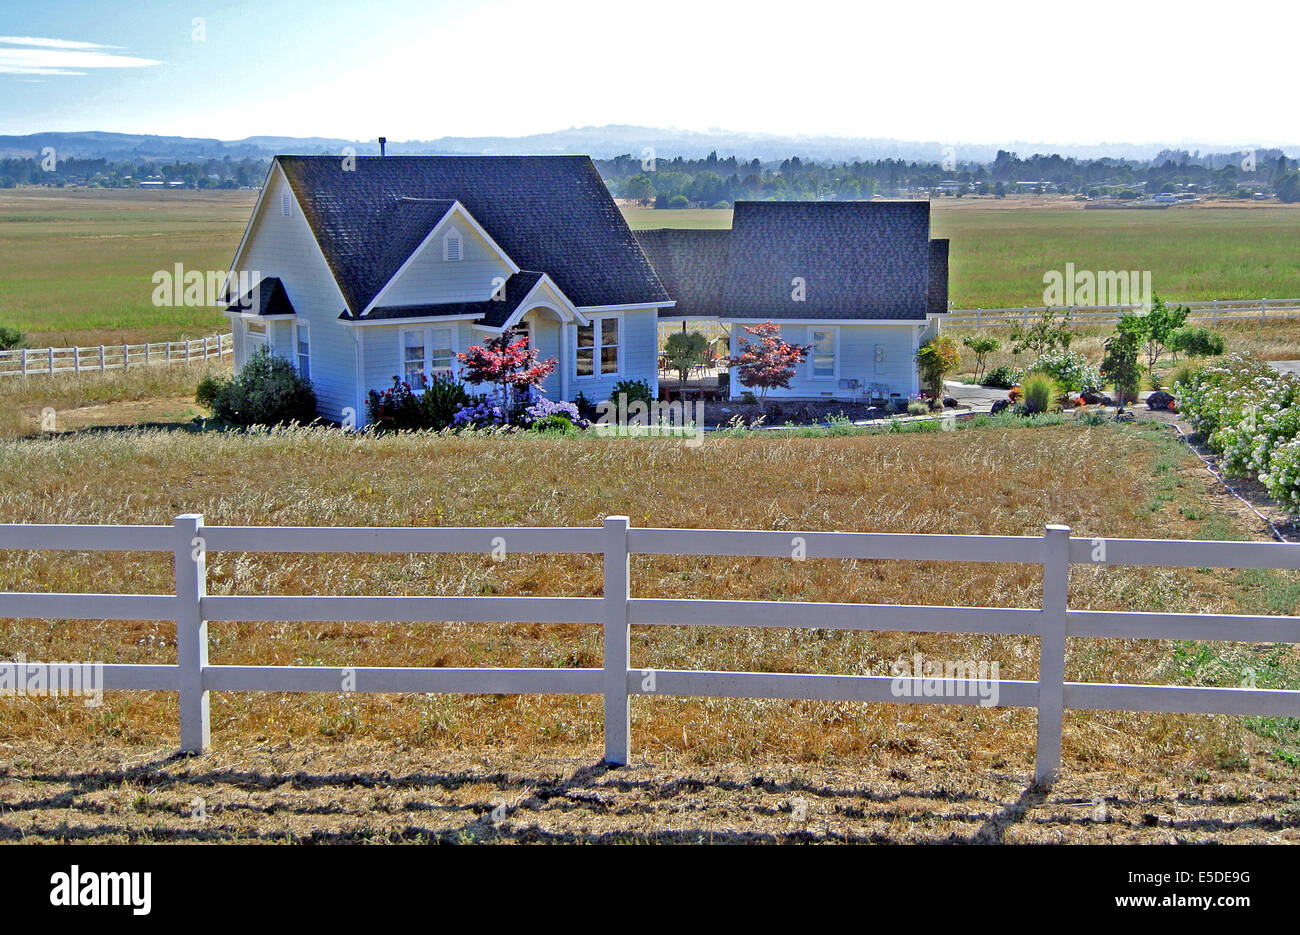 Rural Farm House With White Wooden Fence In Petaluma